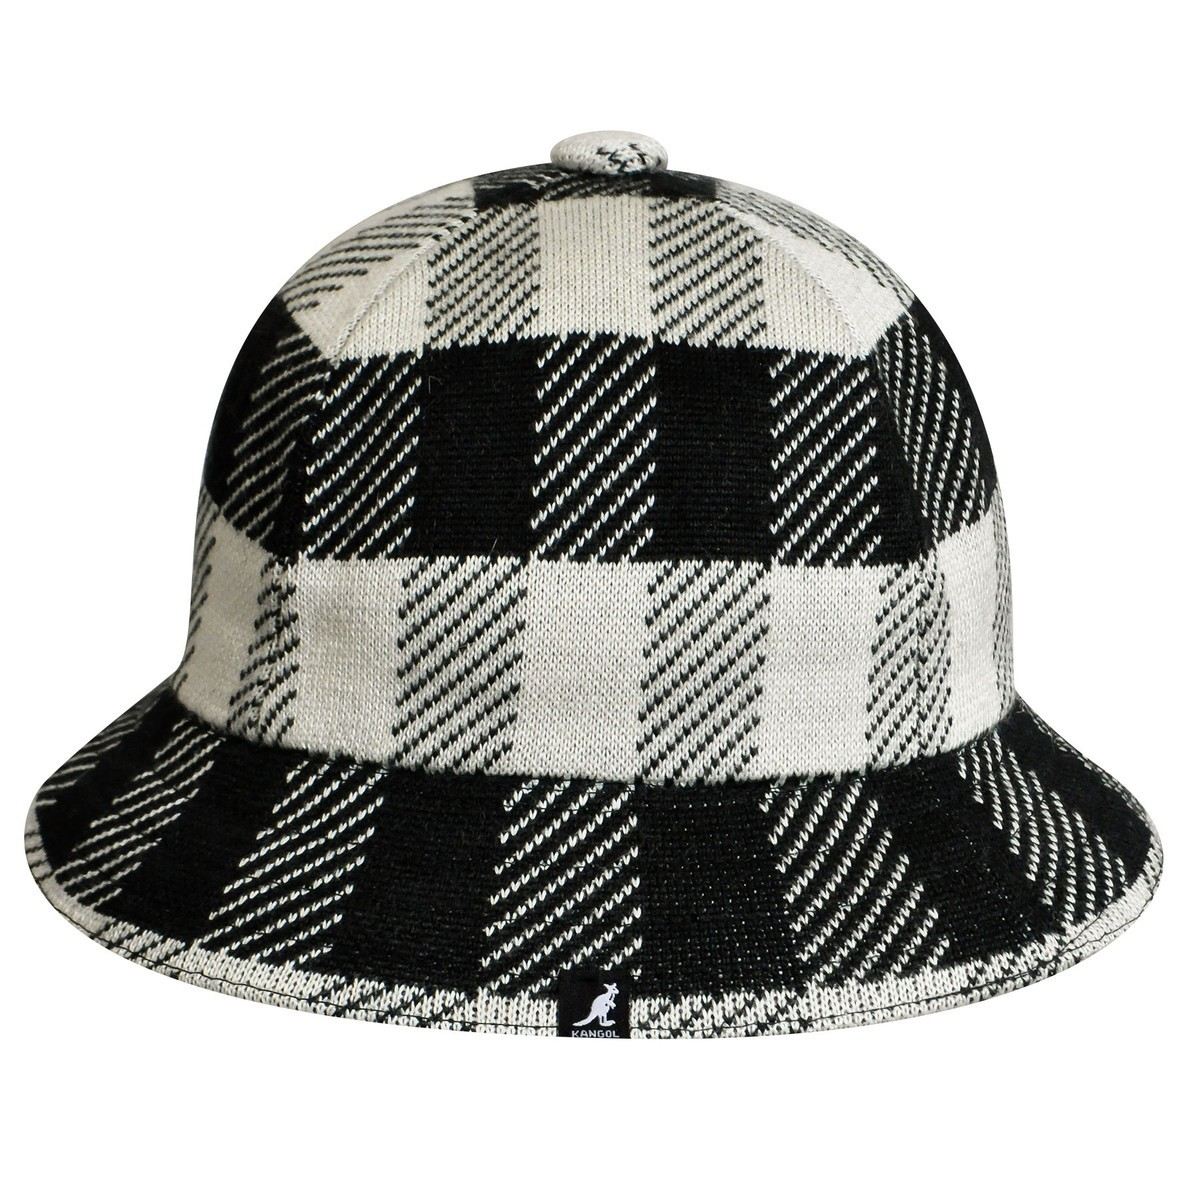 Kangol カンゴール Frontier Casual Black Off White バケットハット 帽子 Black Off White